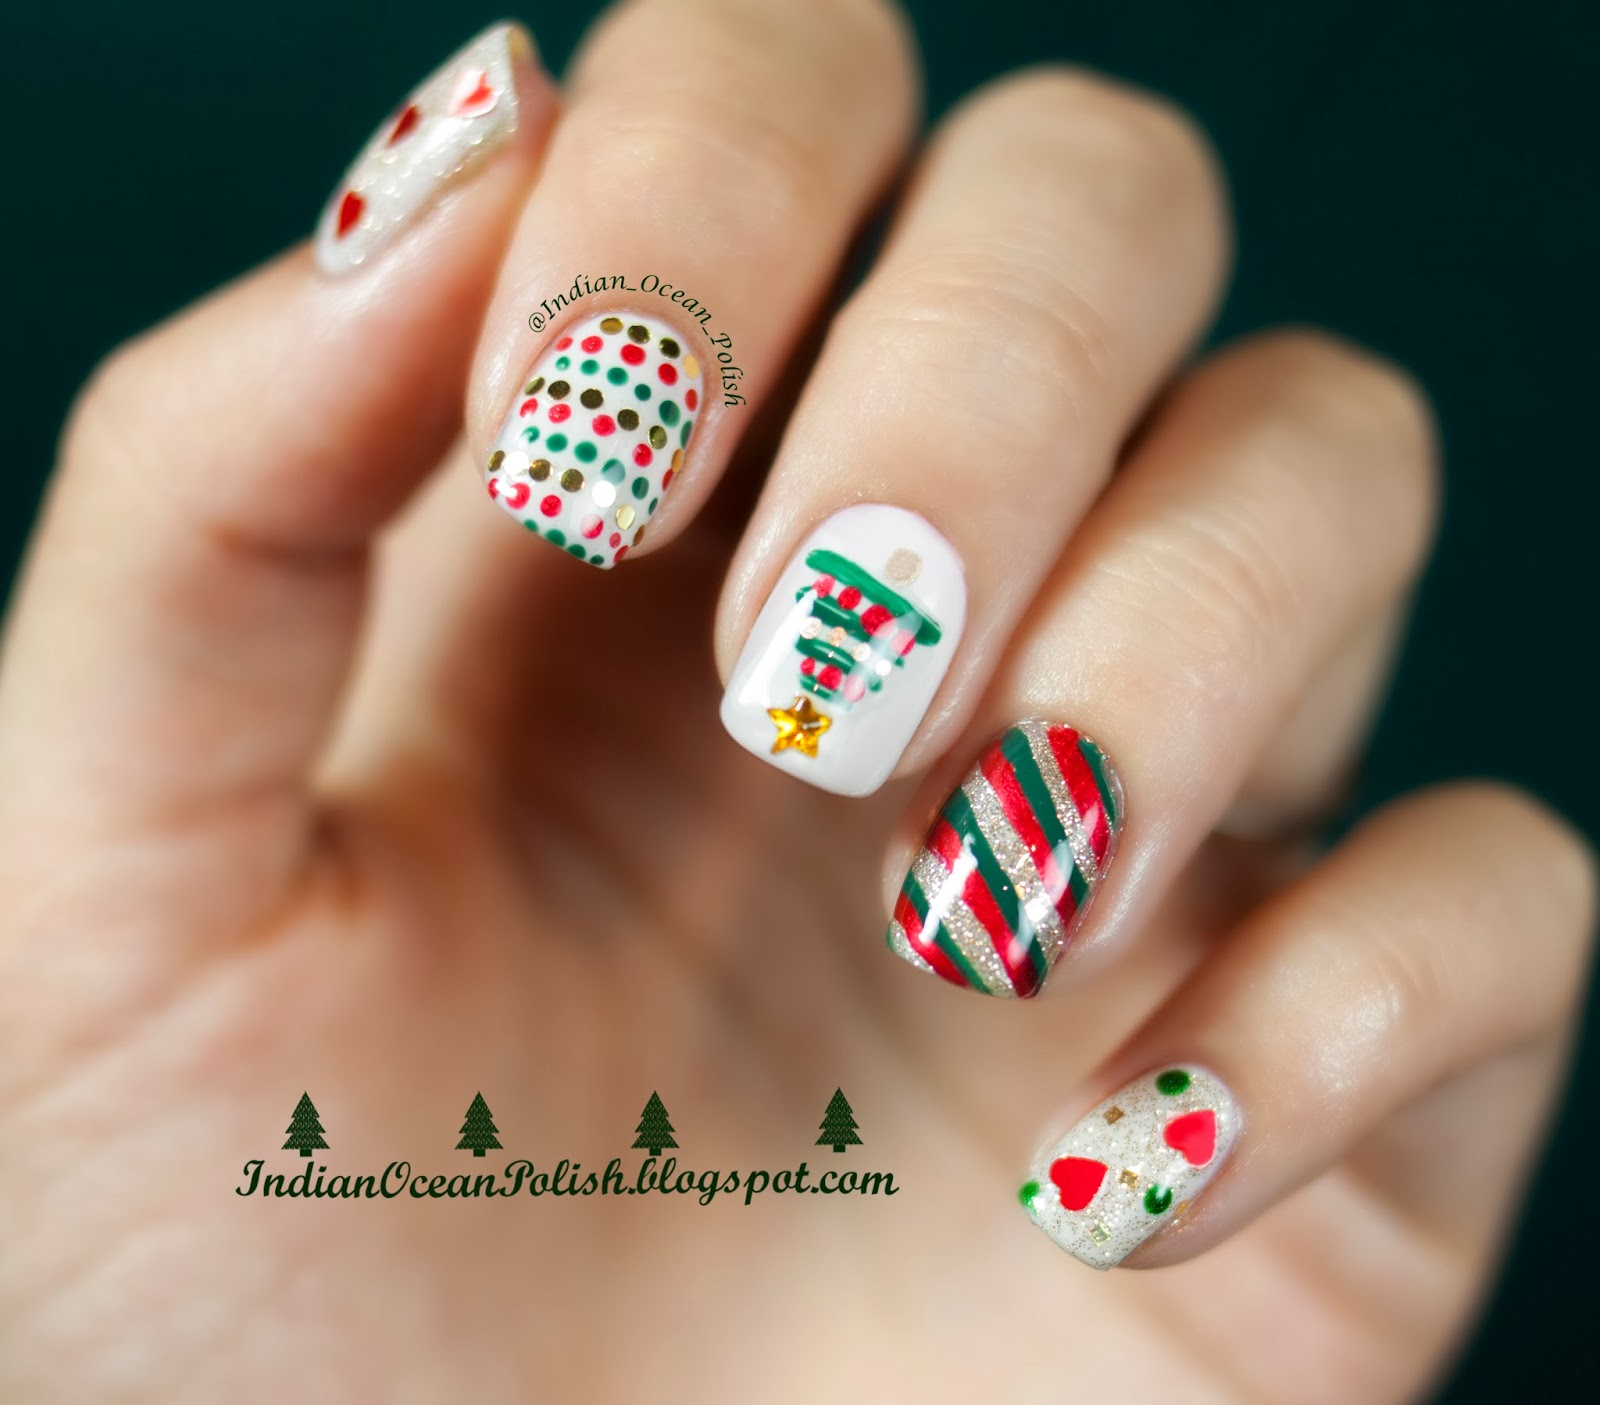 Ideas Of Nail Art: Indian Ocean Polish: Christmas 2013 Nail Art Ideas: Simple